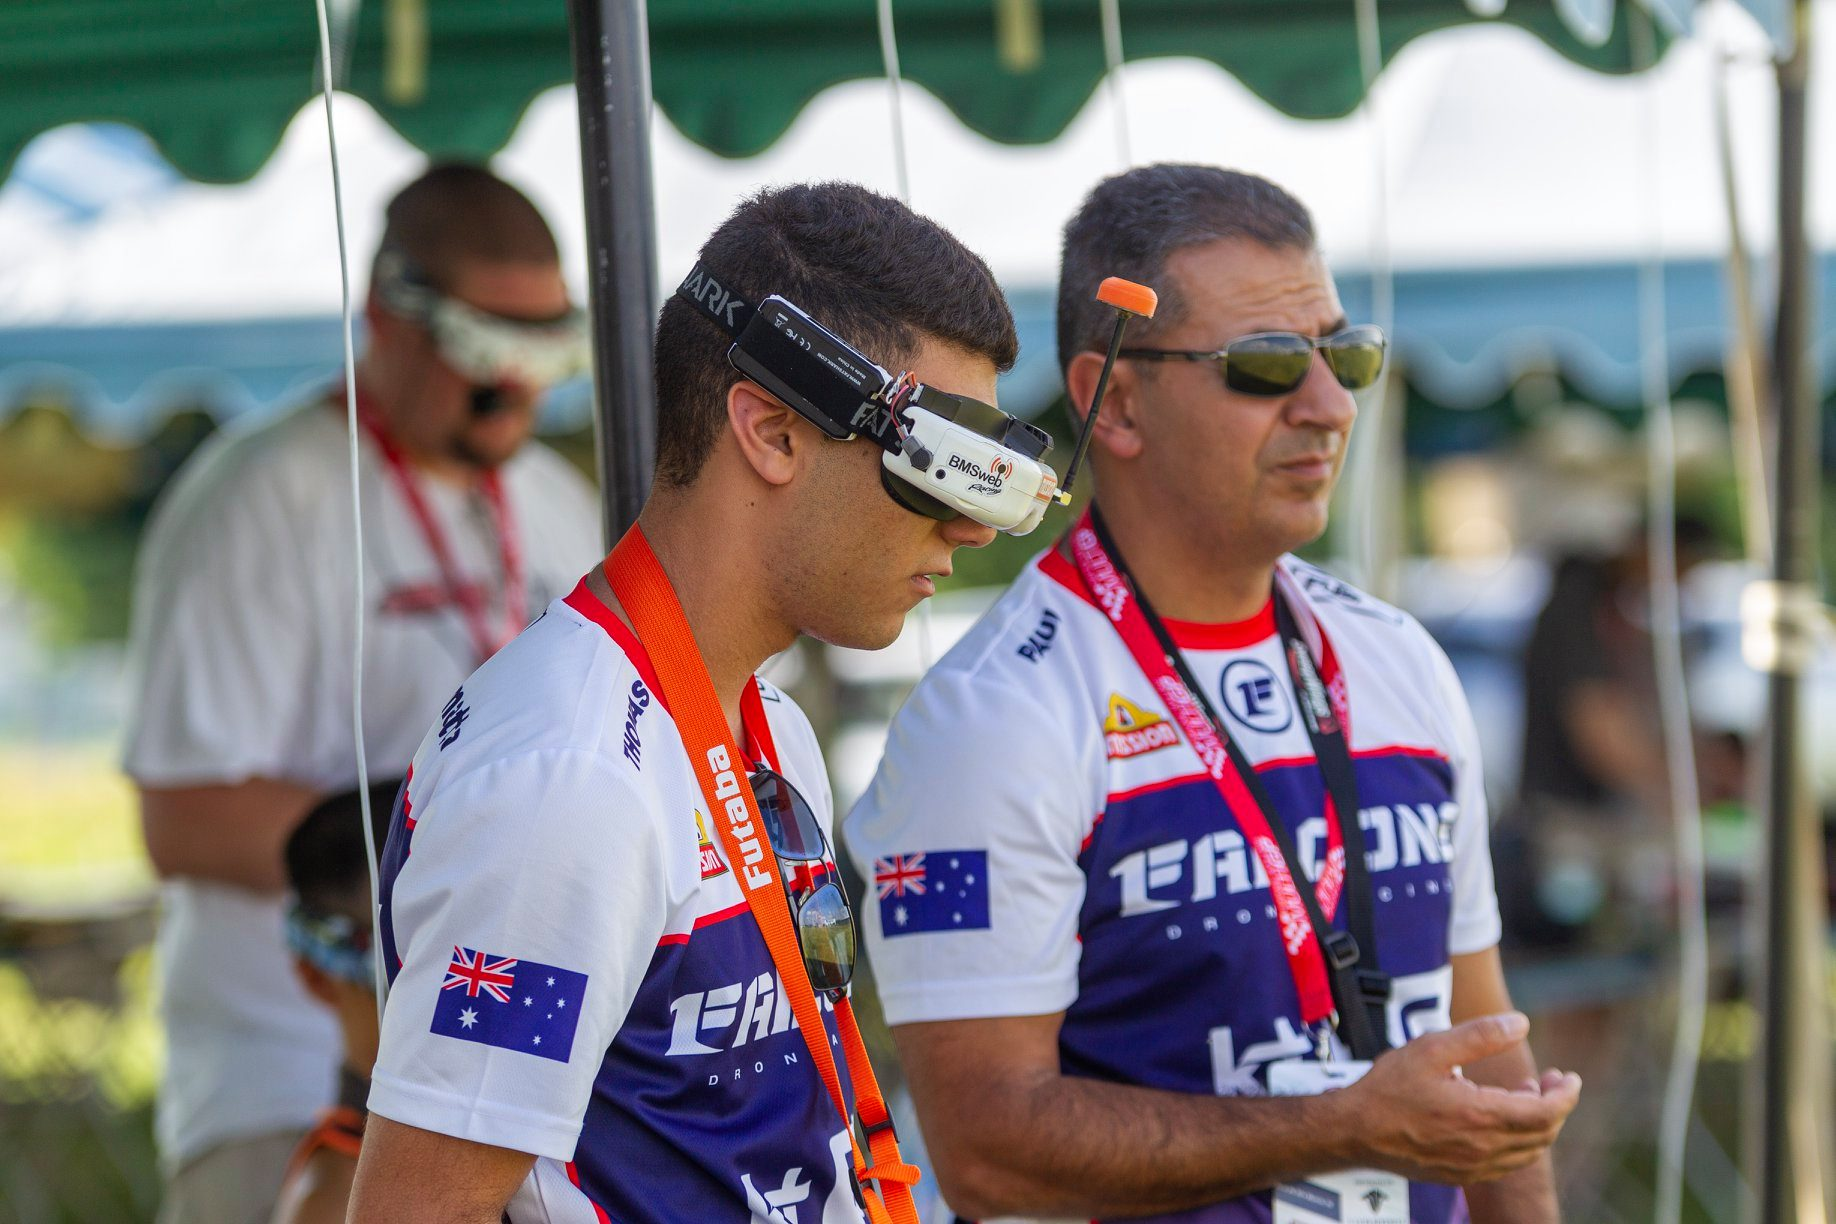 Thomas (left) and Paul at the MultiGP International Open World Cup in Muncie, USA, in 2019.